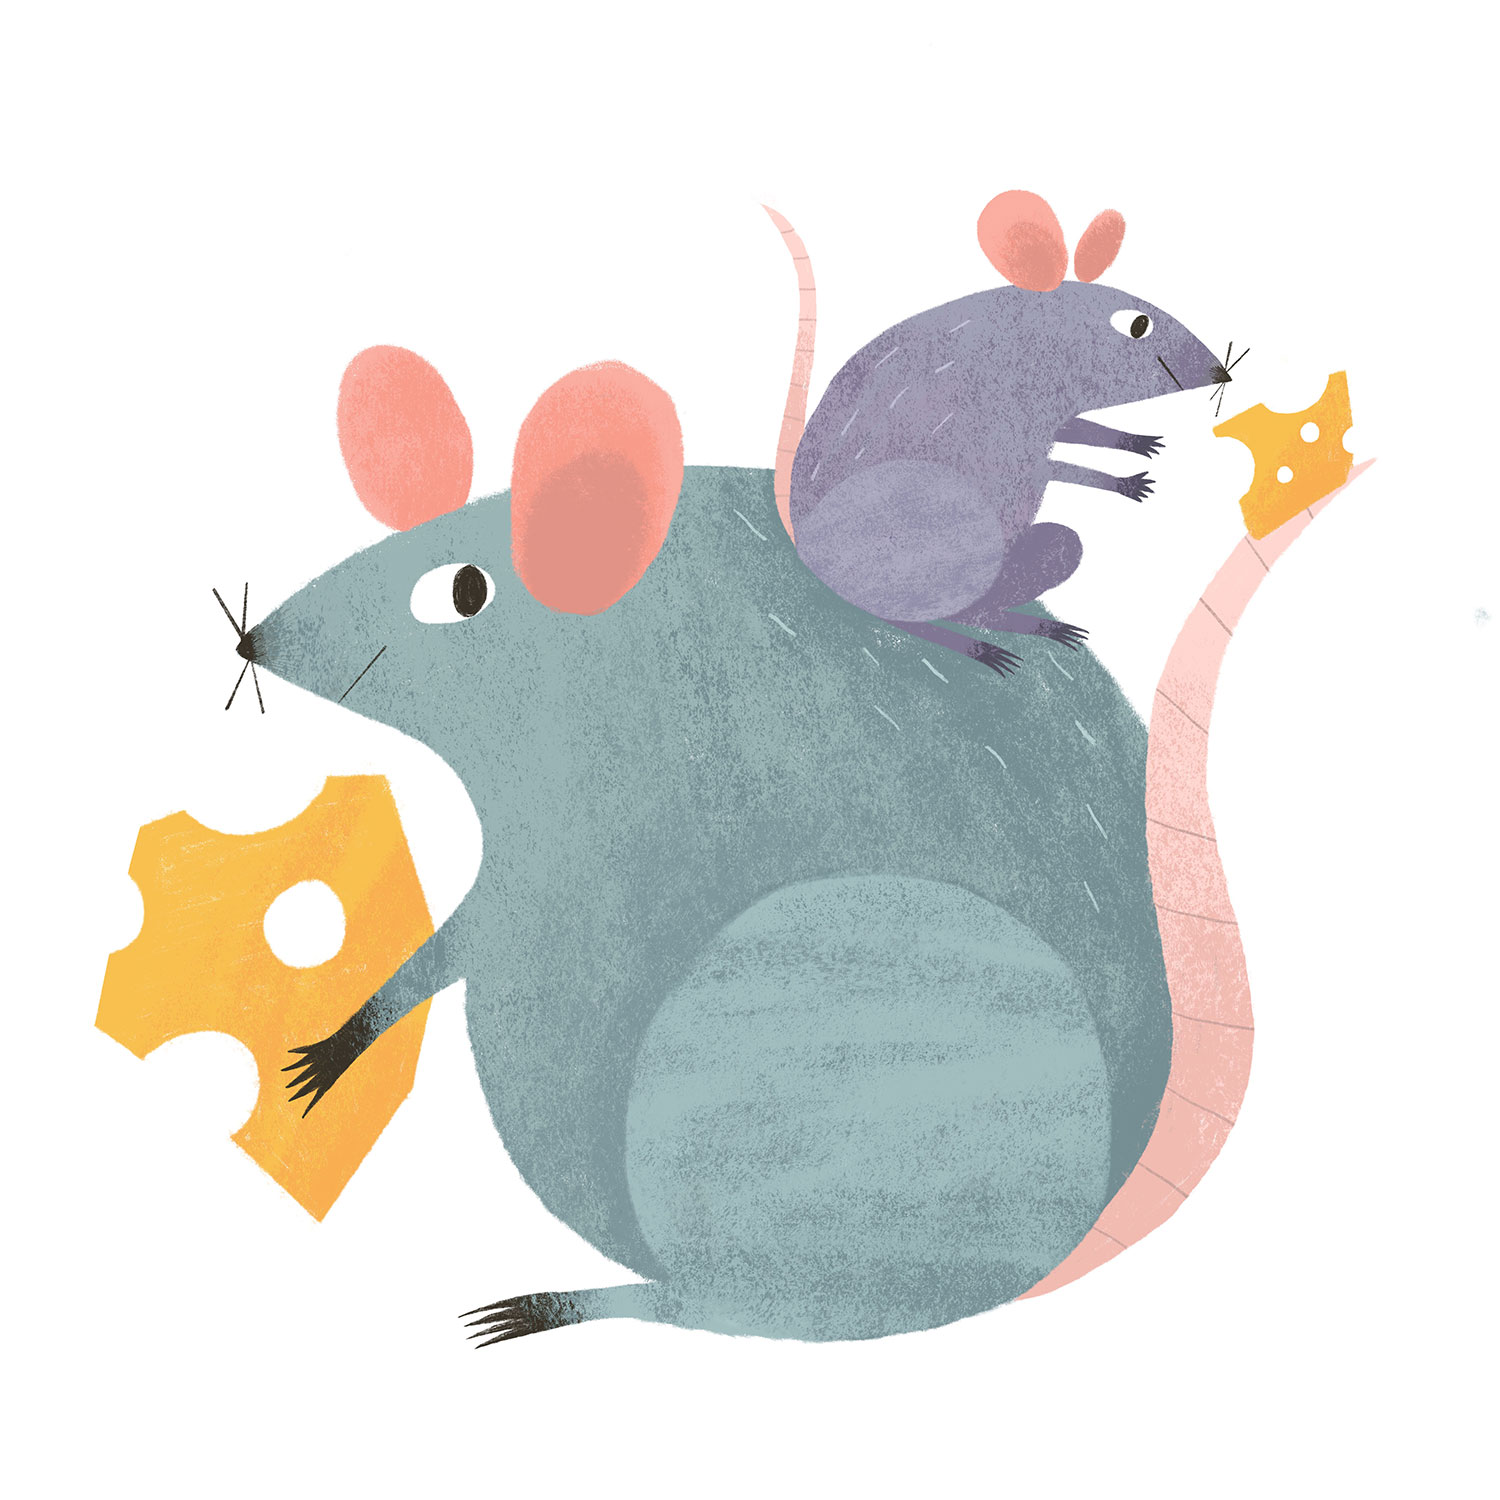 New Year Card 2020 - Rats